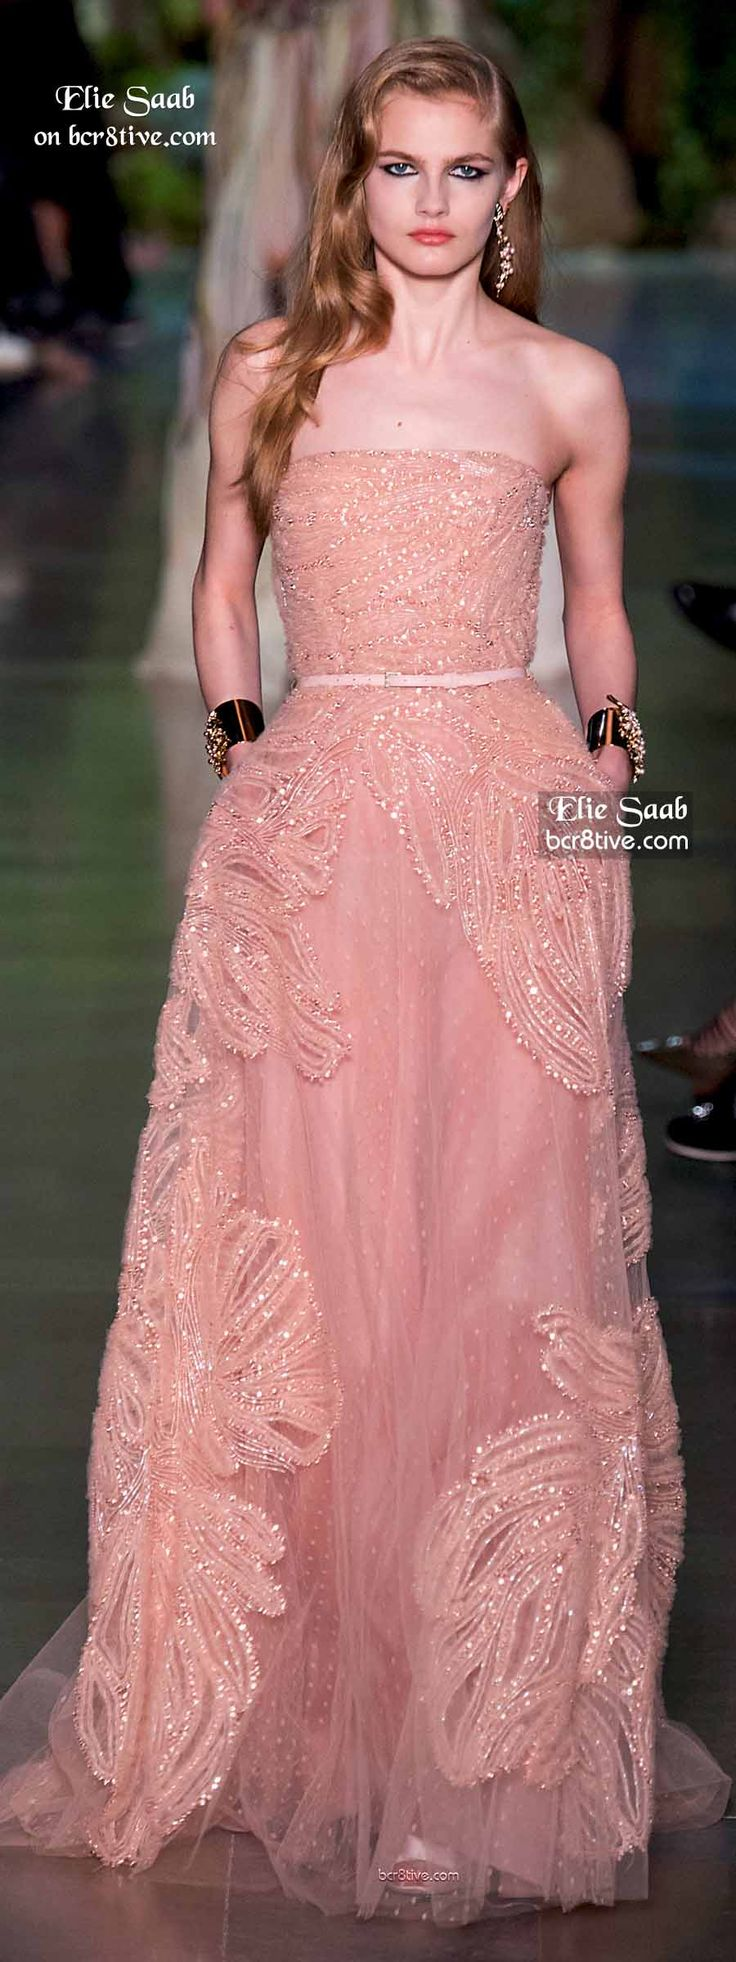 183 best Elie Saab images on Pinterest | High fashion, Evening gowns ...